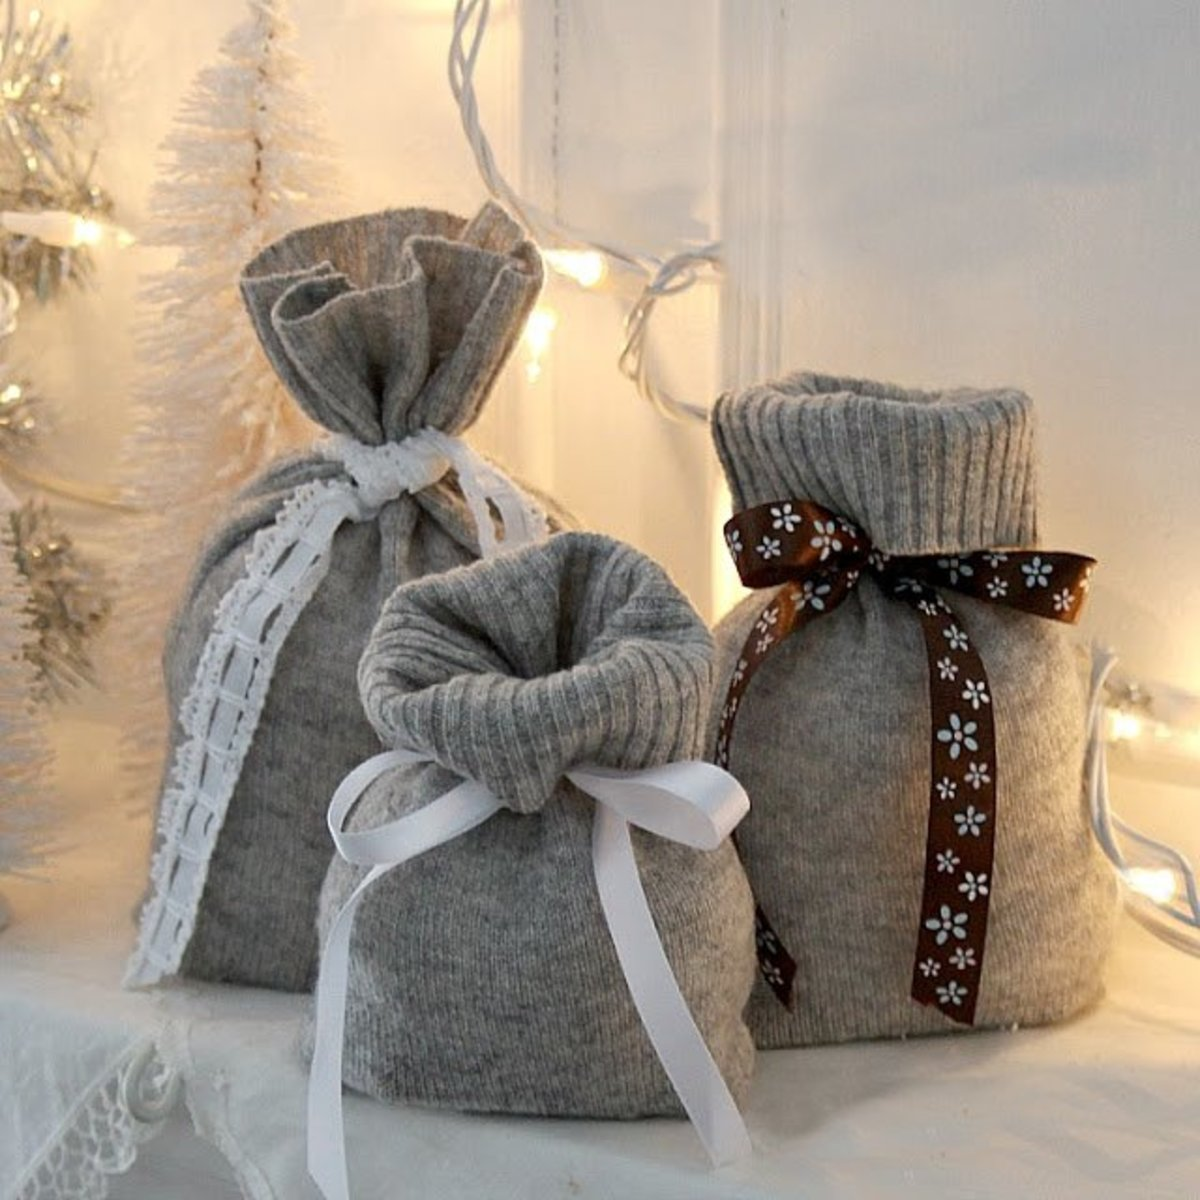 Old sweater sleeves make good gift bags.